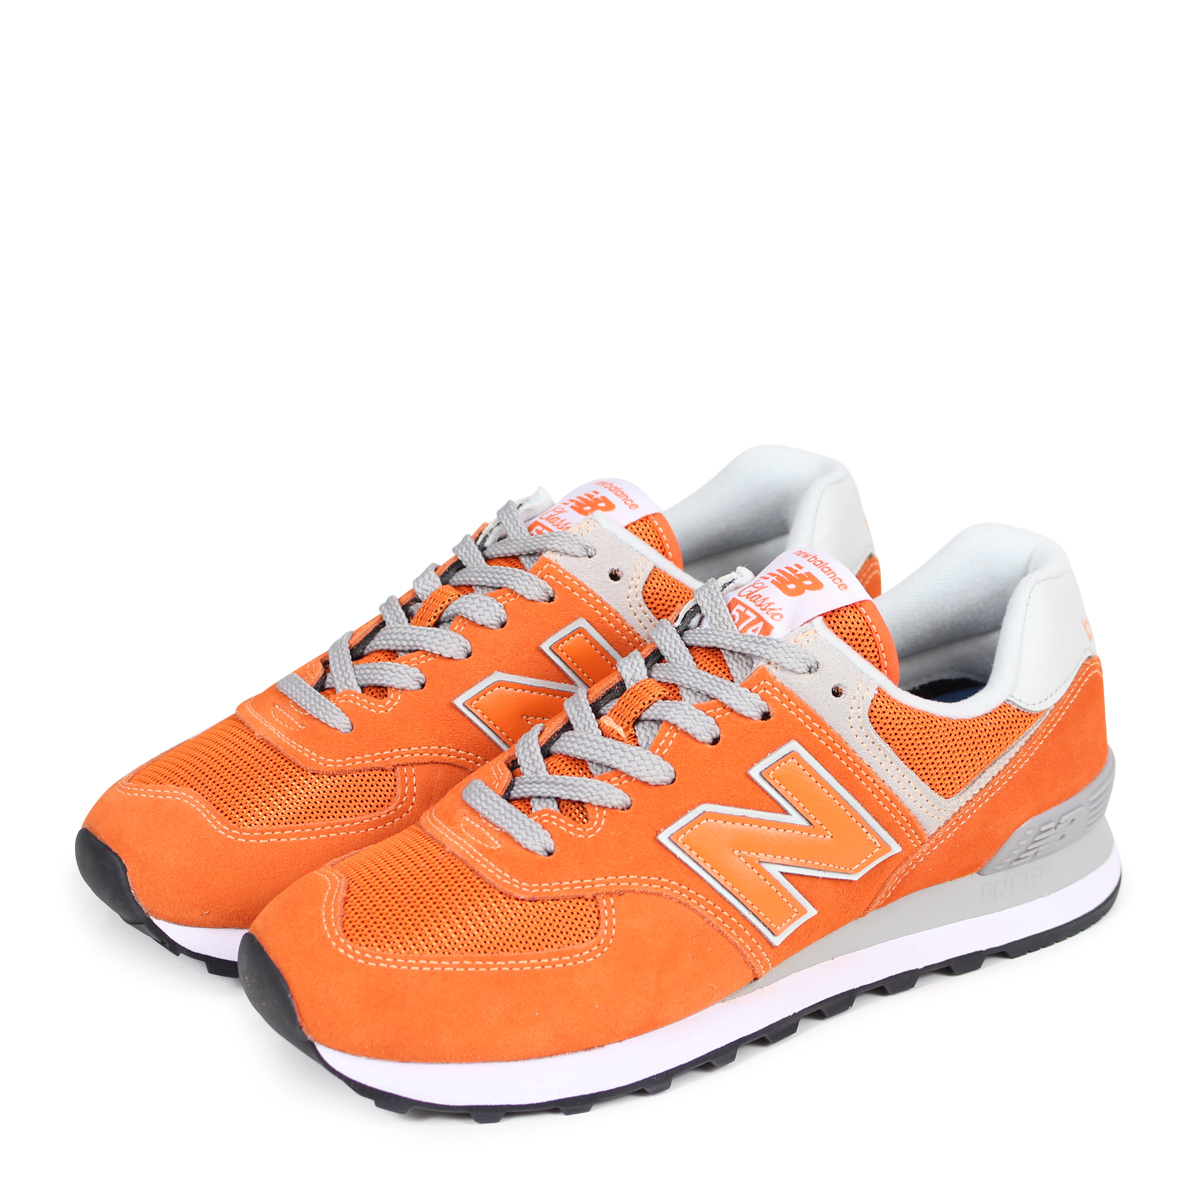 pretty nice fcf4f a4953 new balance ML574EVO New Balance 574 men's lady's sneakers D Wise orange  [185]